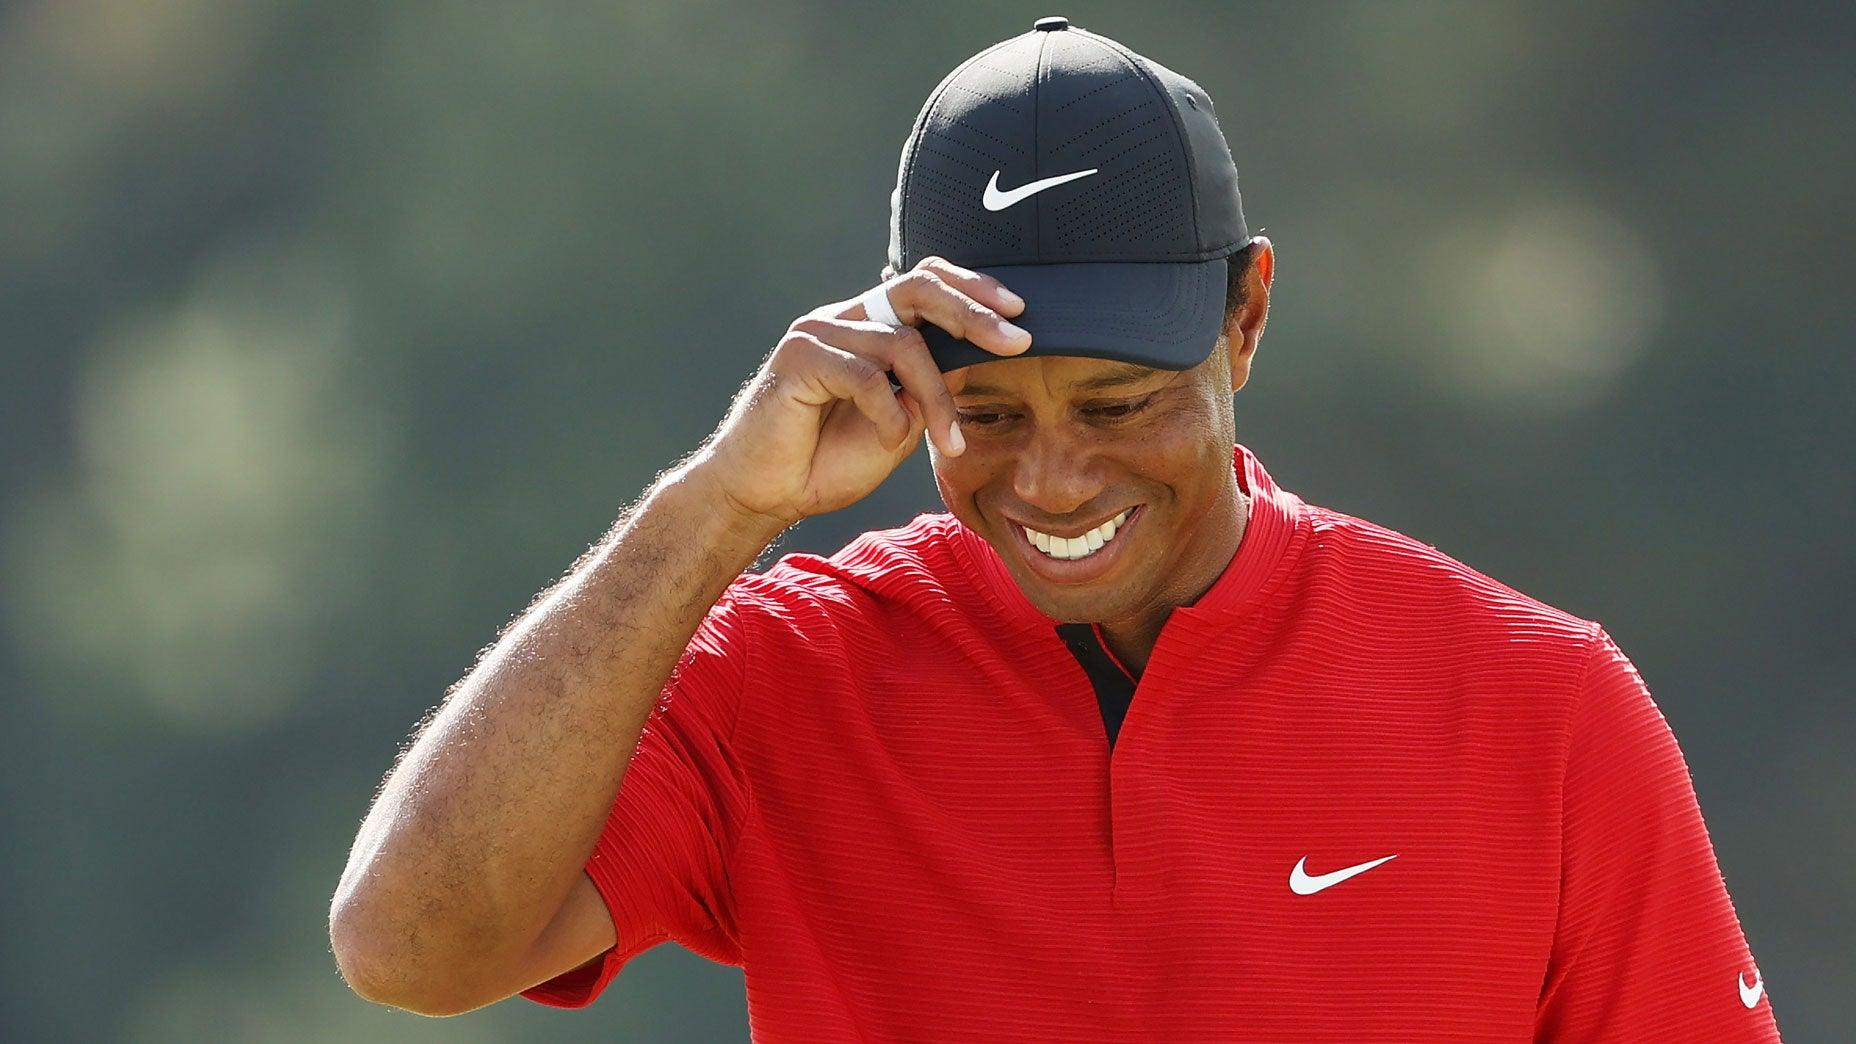 Did Tiger Woods actually have one of the best jabs at The Match?